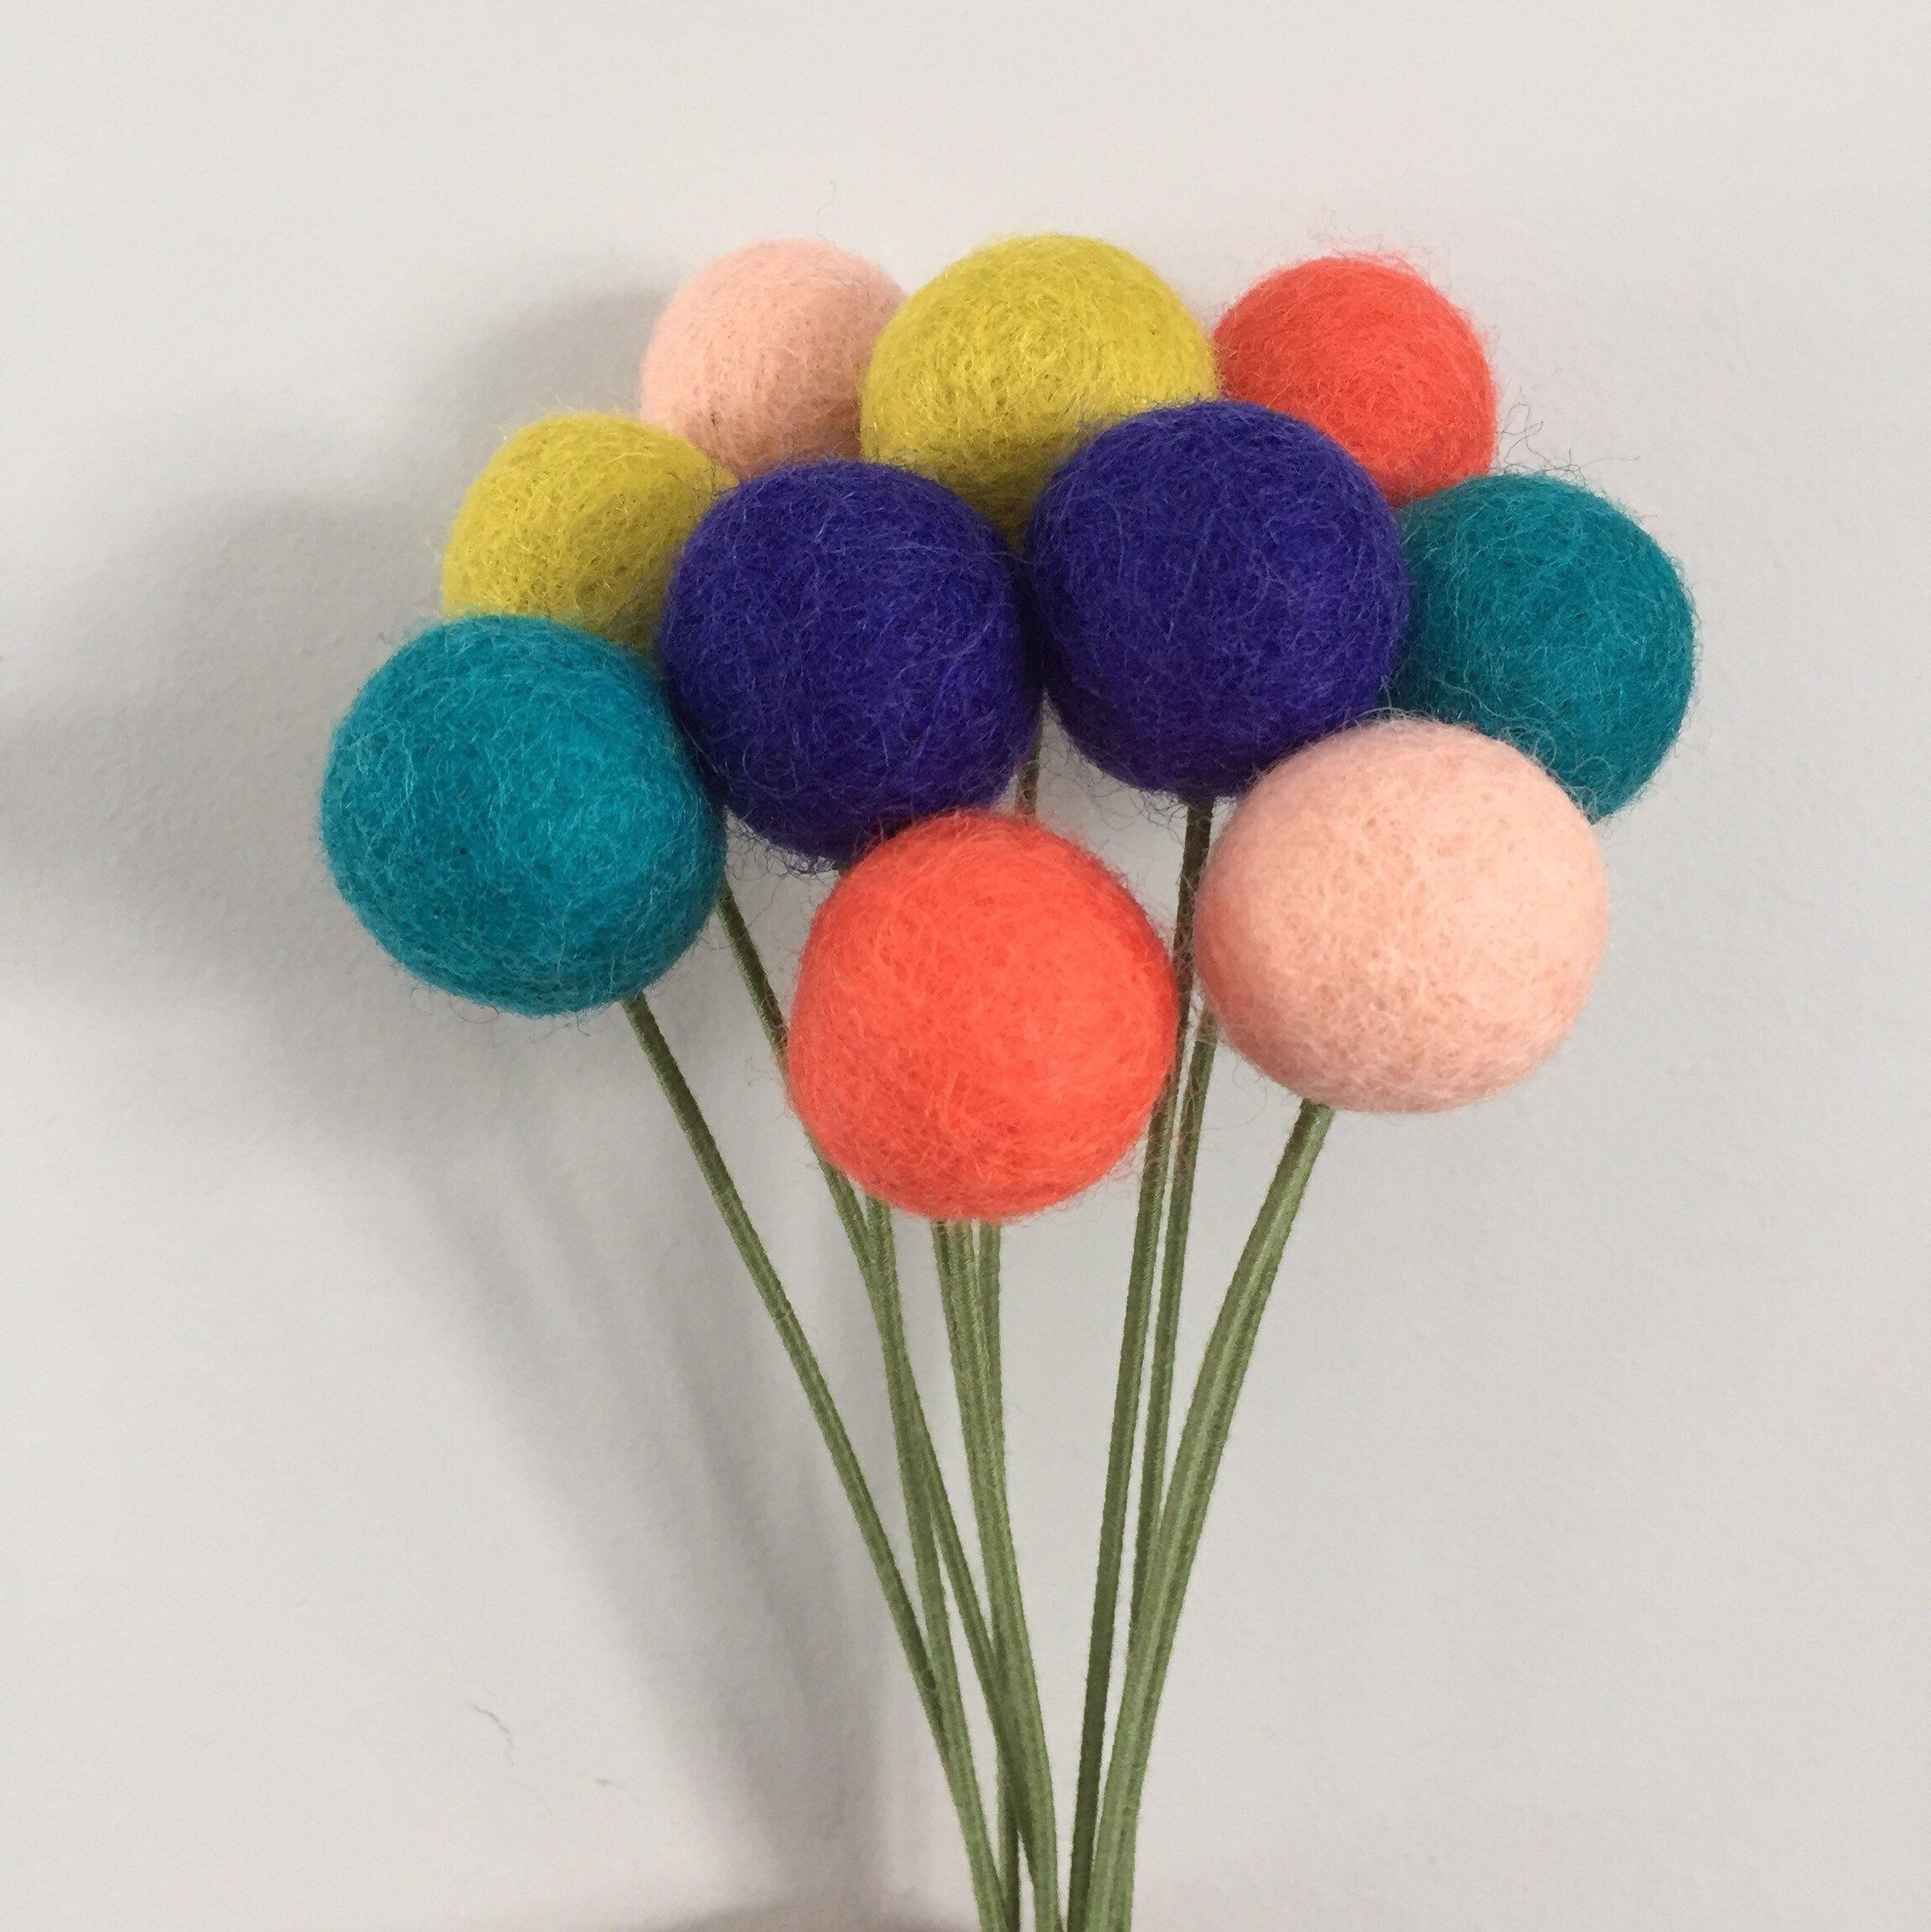 Felt ball flower bouquet table arrangement birthday party decor